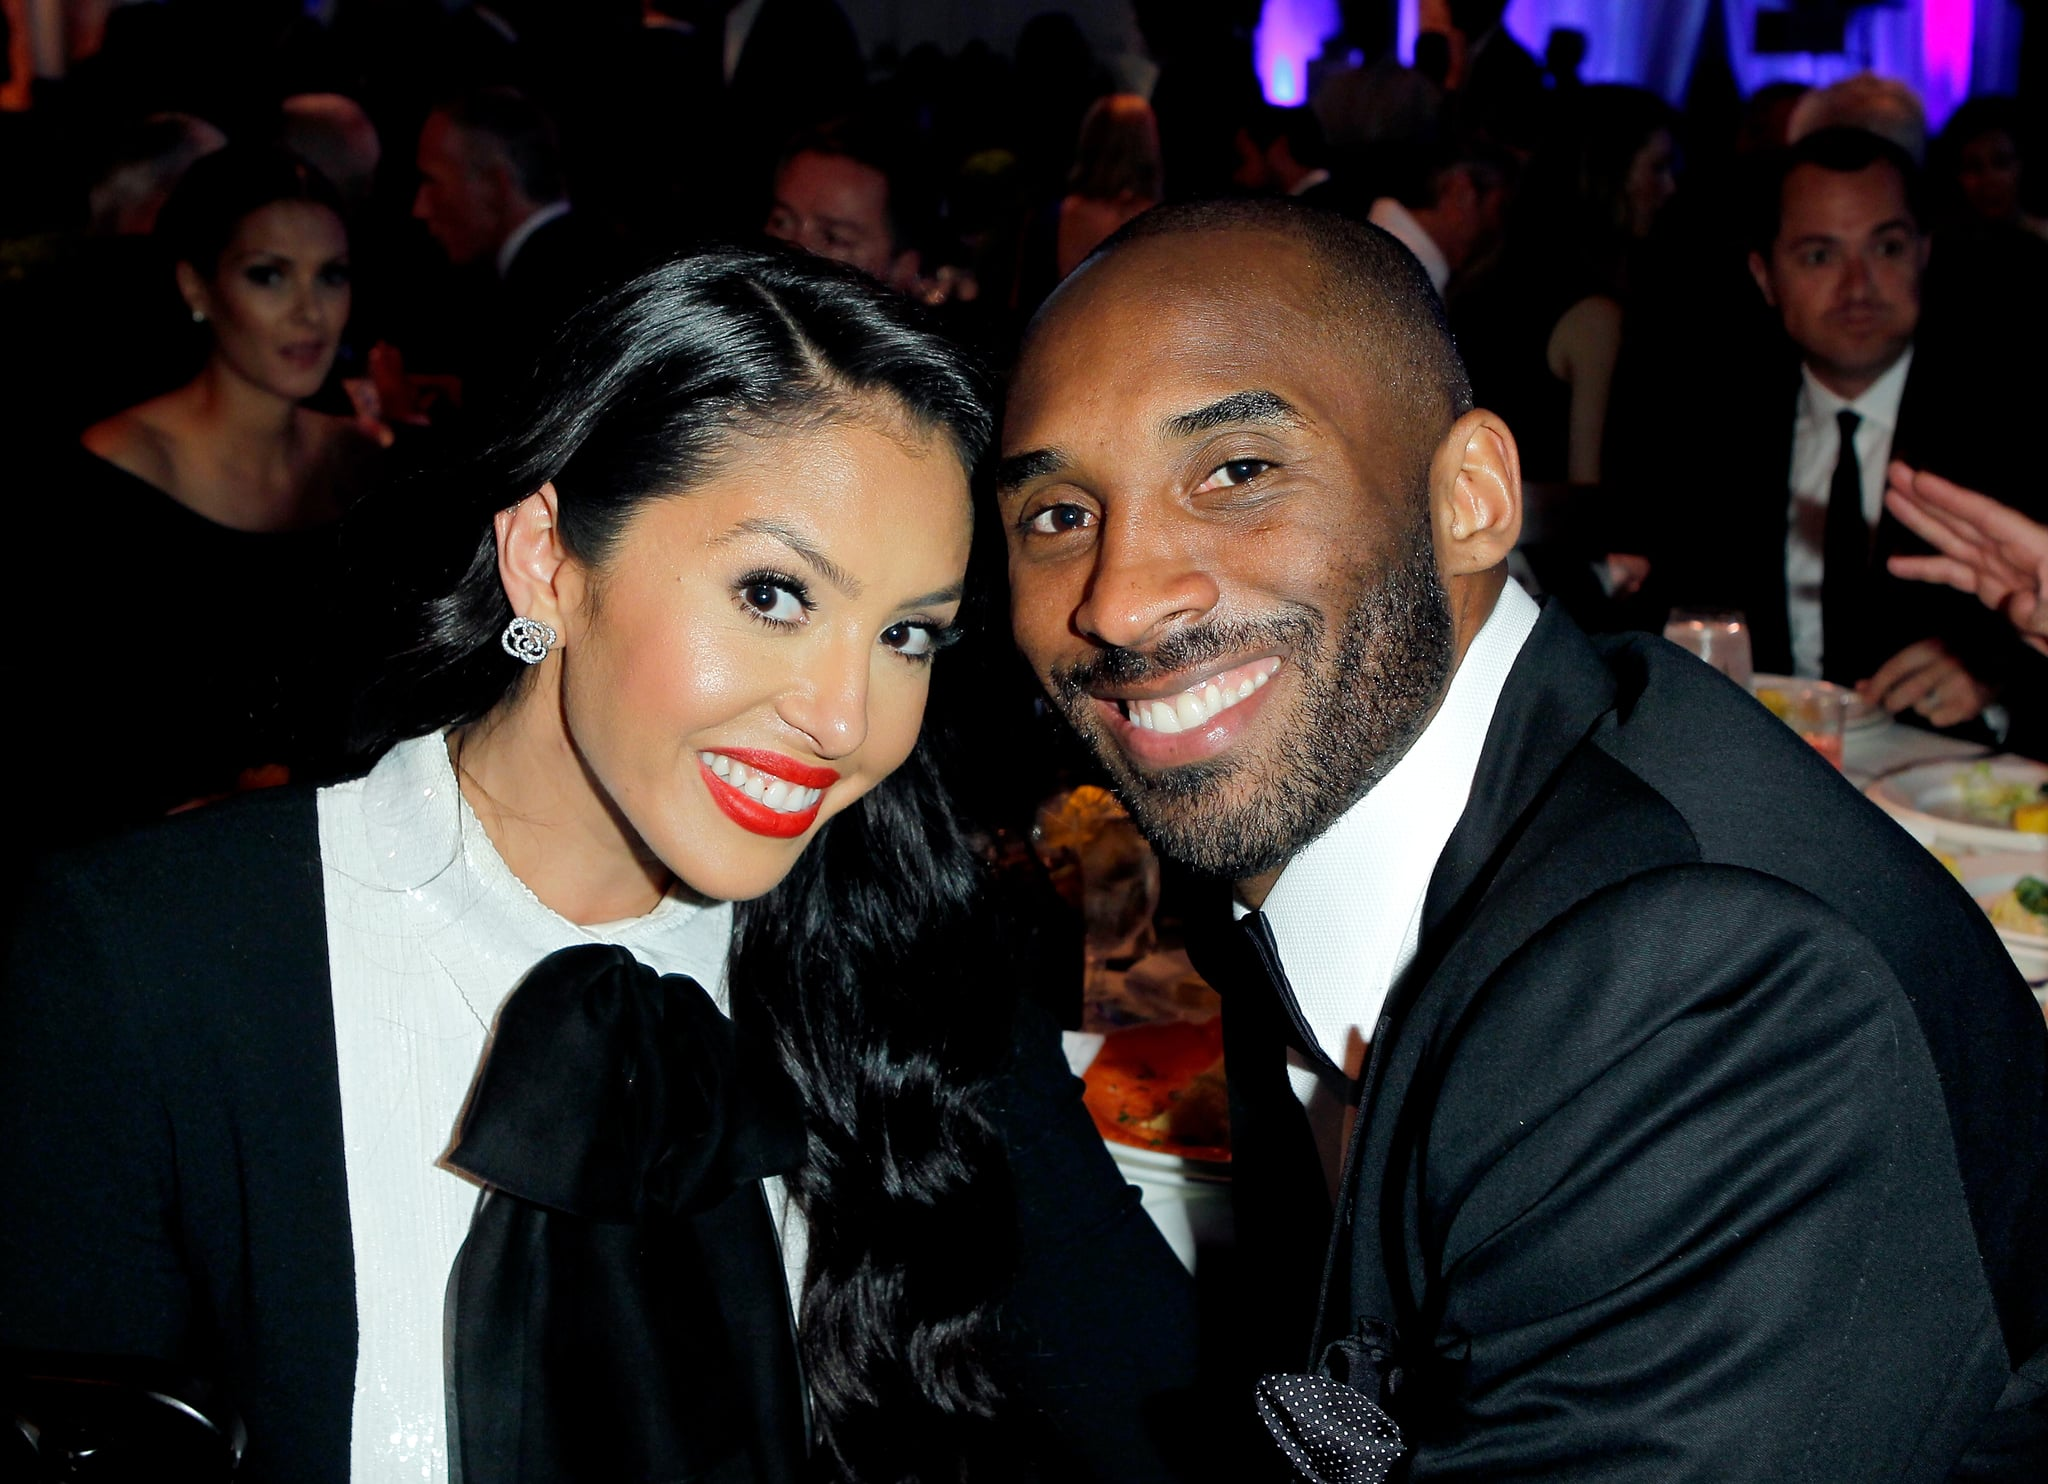 """BEVERLY HILLS, CA - MAY 02:  NBA player Kobe Bryant (R) and Vanessa Bryant attend EIF Women's Cancer Research Fund's 16th Annual """"An Unforgettable Evening"""" presented by Saks Fifth Avenue at the  Beverly Wilshire Four Seasons Hotel on May 2, 2013 in Beverly Hills, California.  (Photo by Donato Sardella/Getty Images for EIF)"""